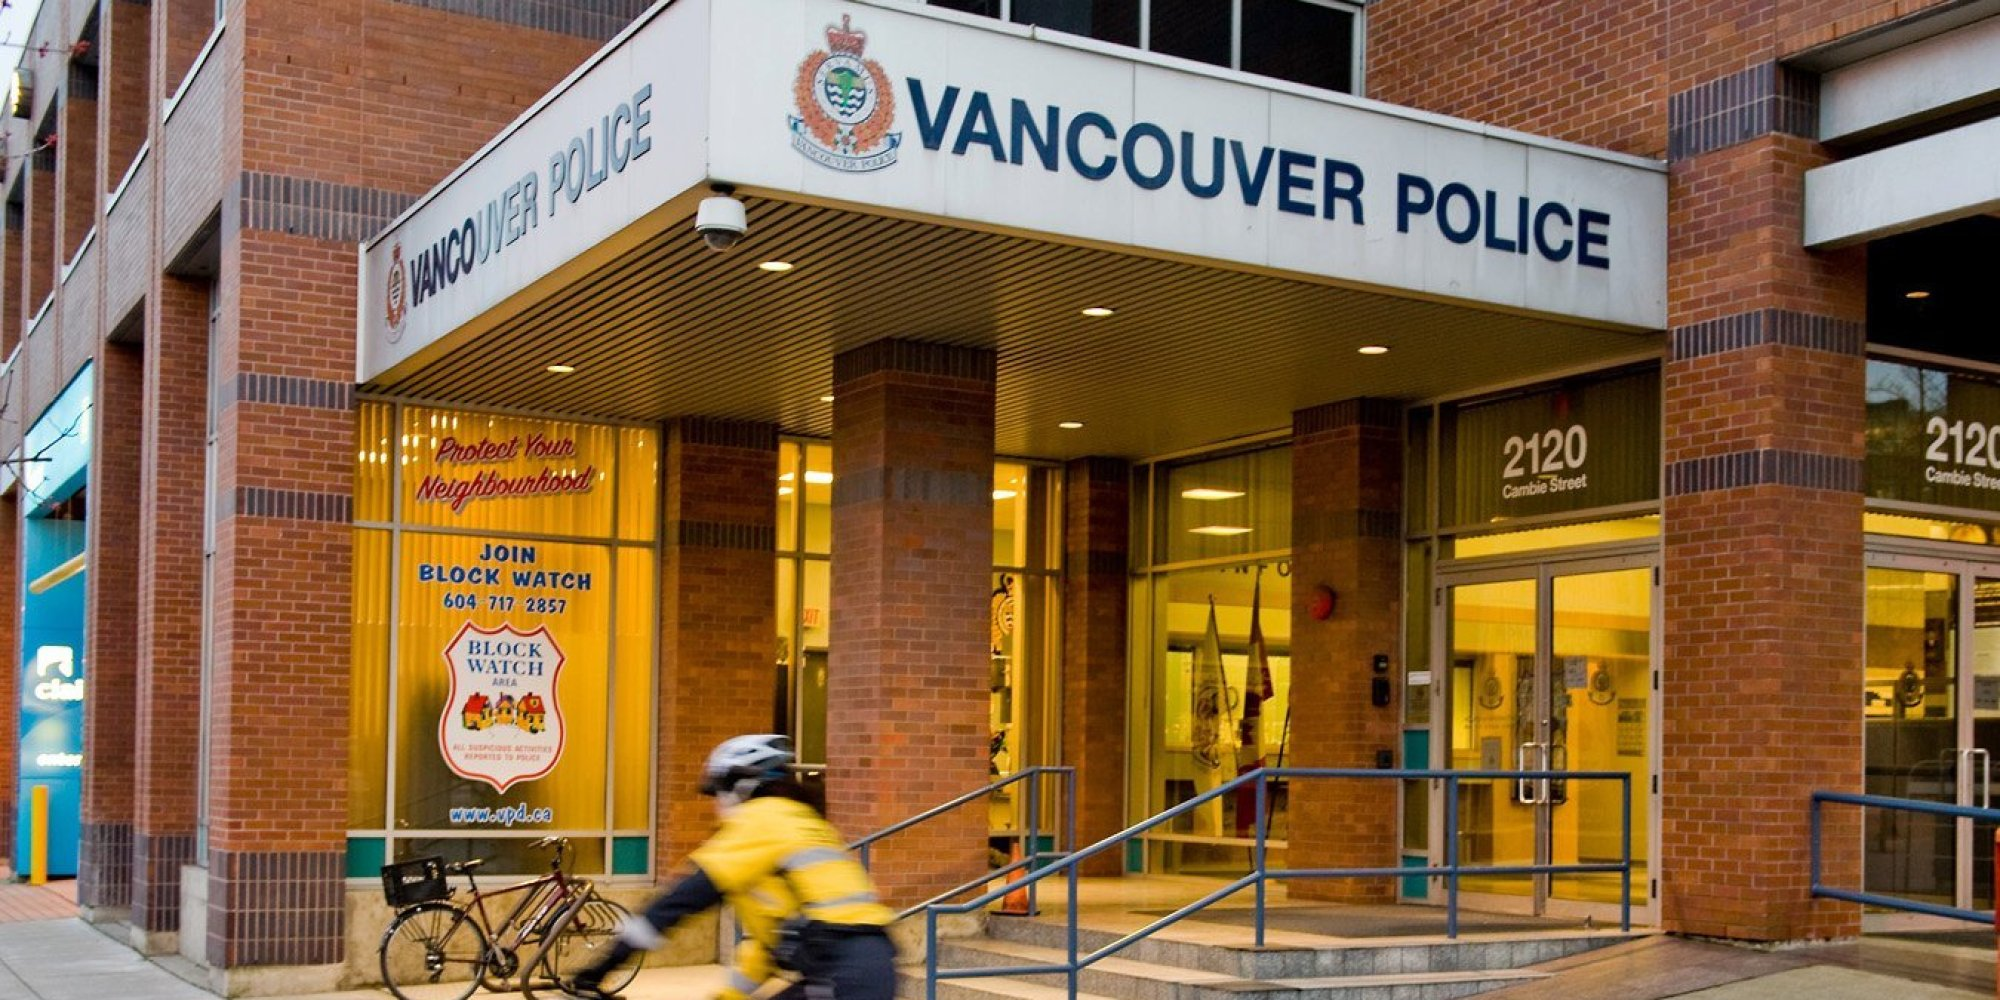 Vancouver Police Department Photo